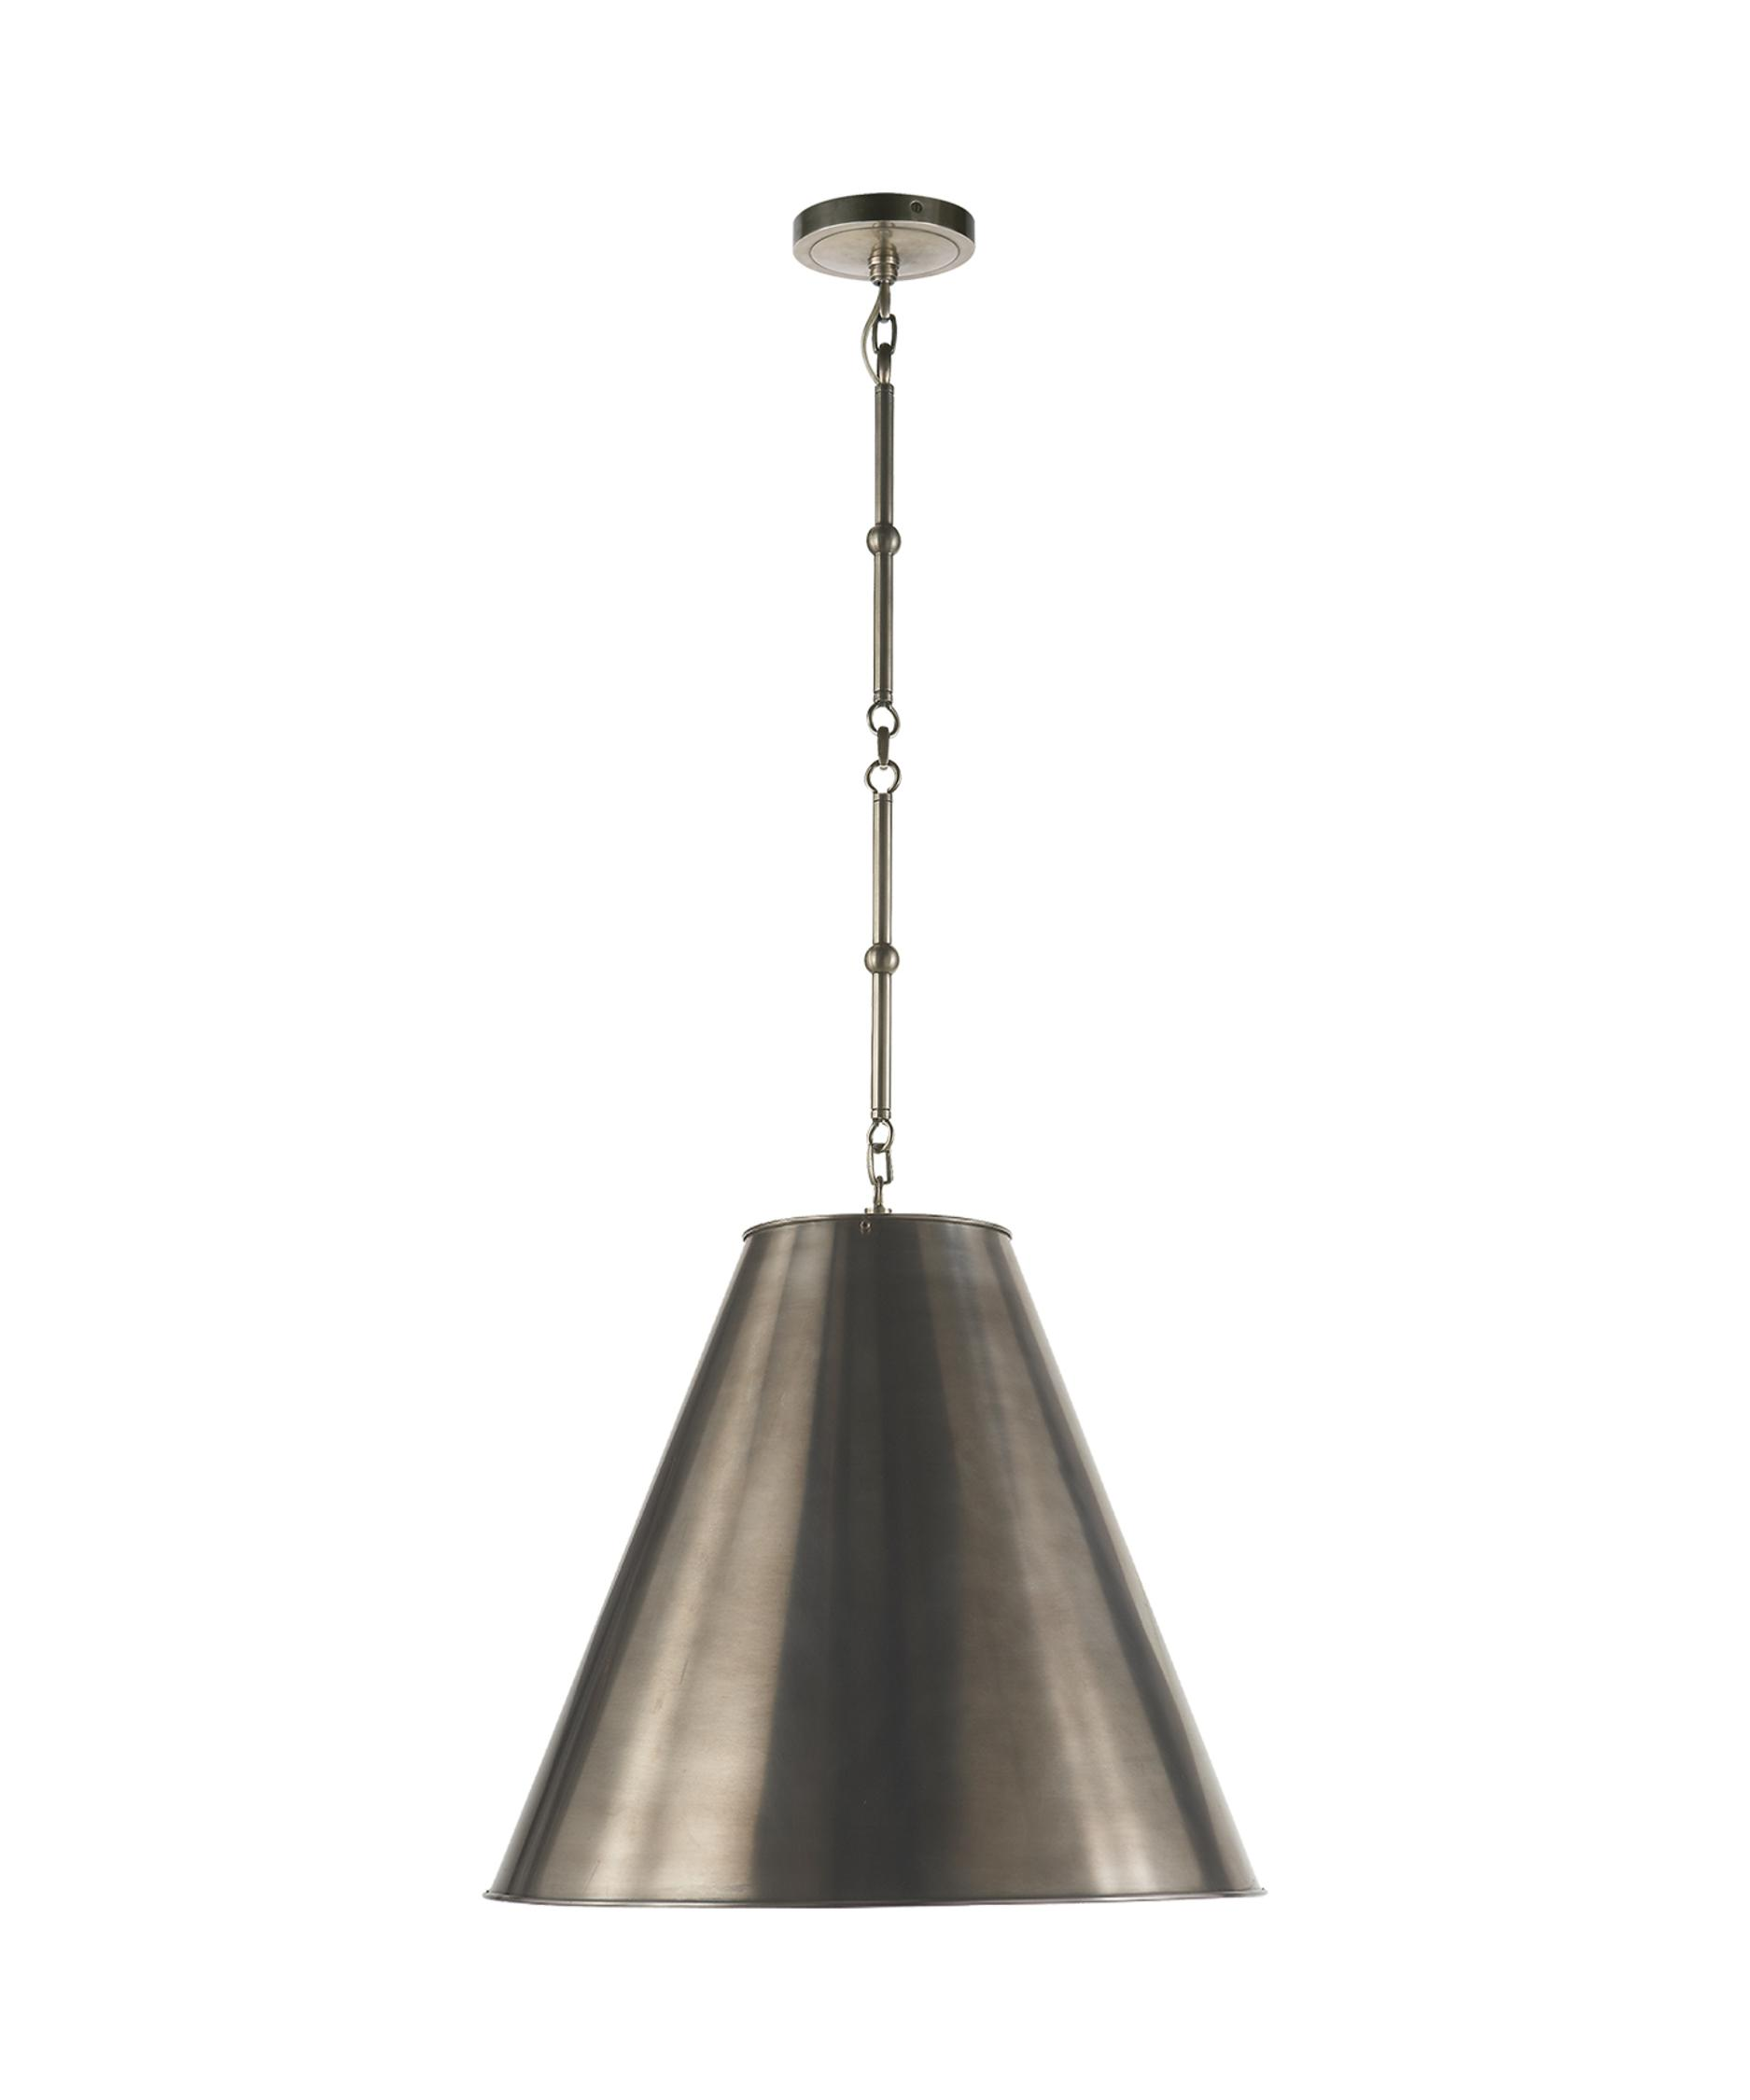 Thomas O'brien Goodman Petite Hanging Shade (Click image for direct link)